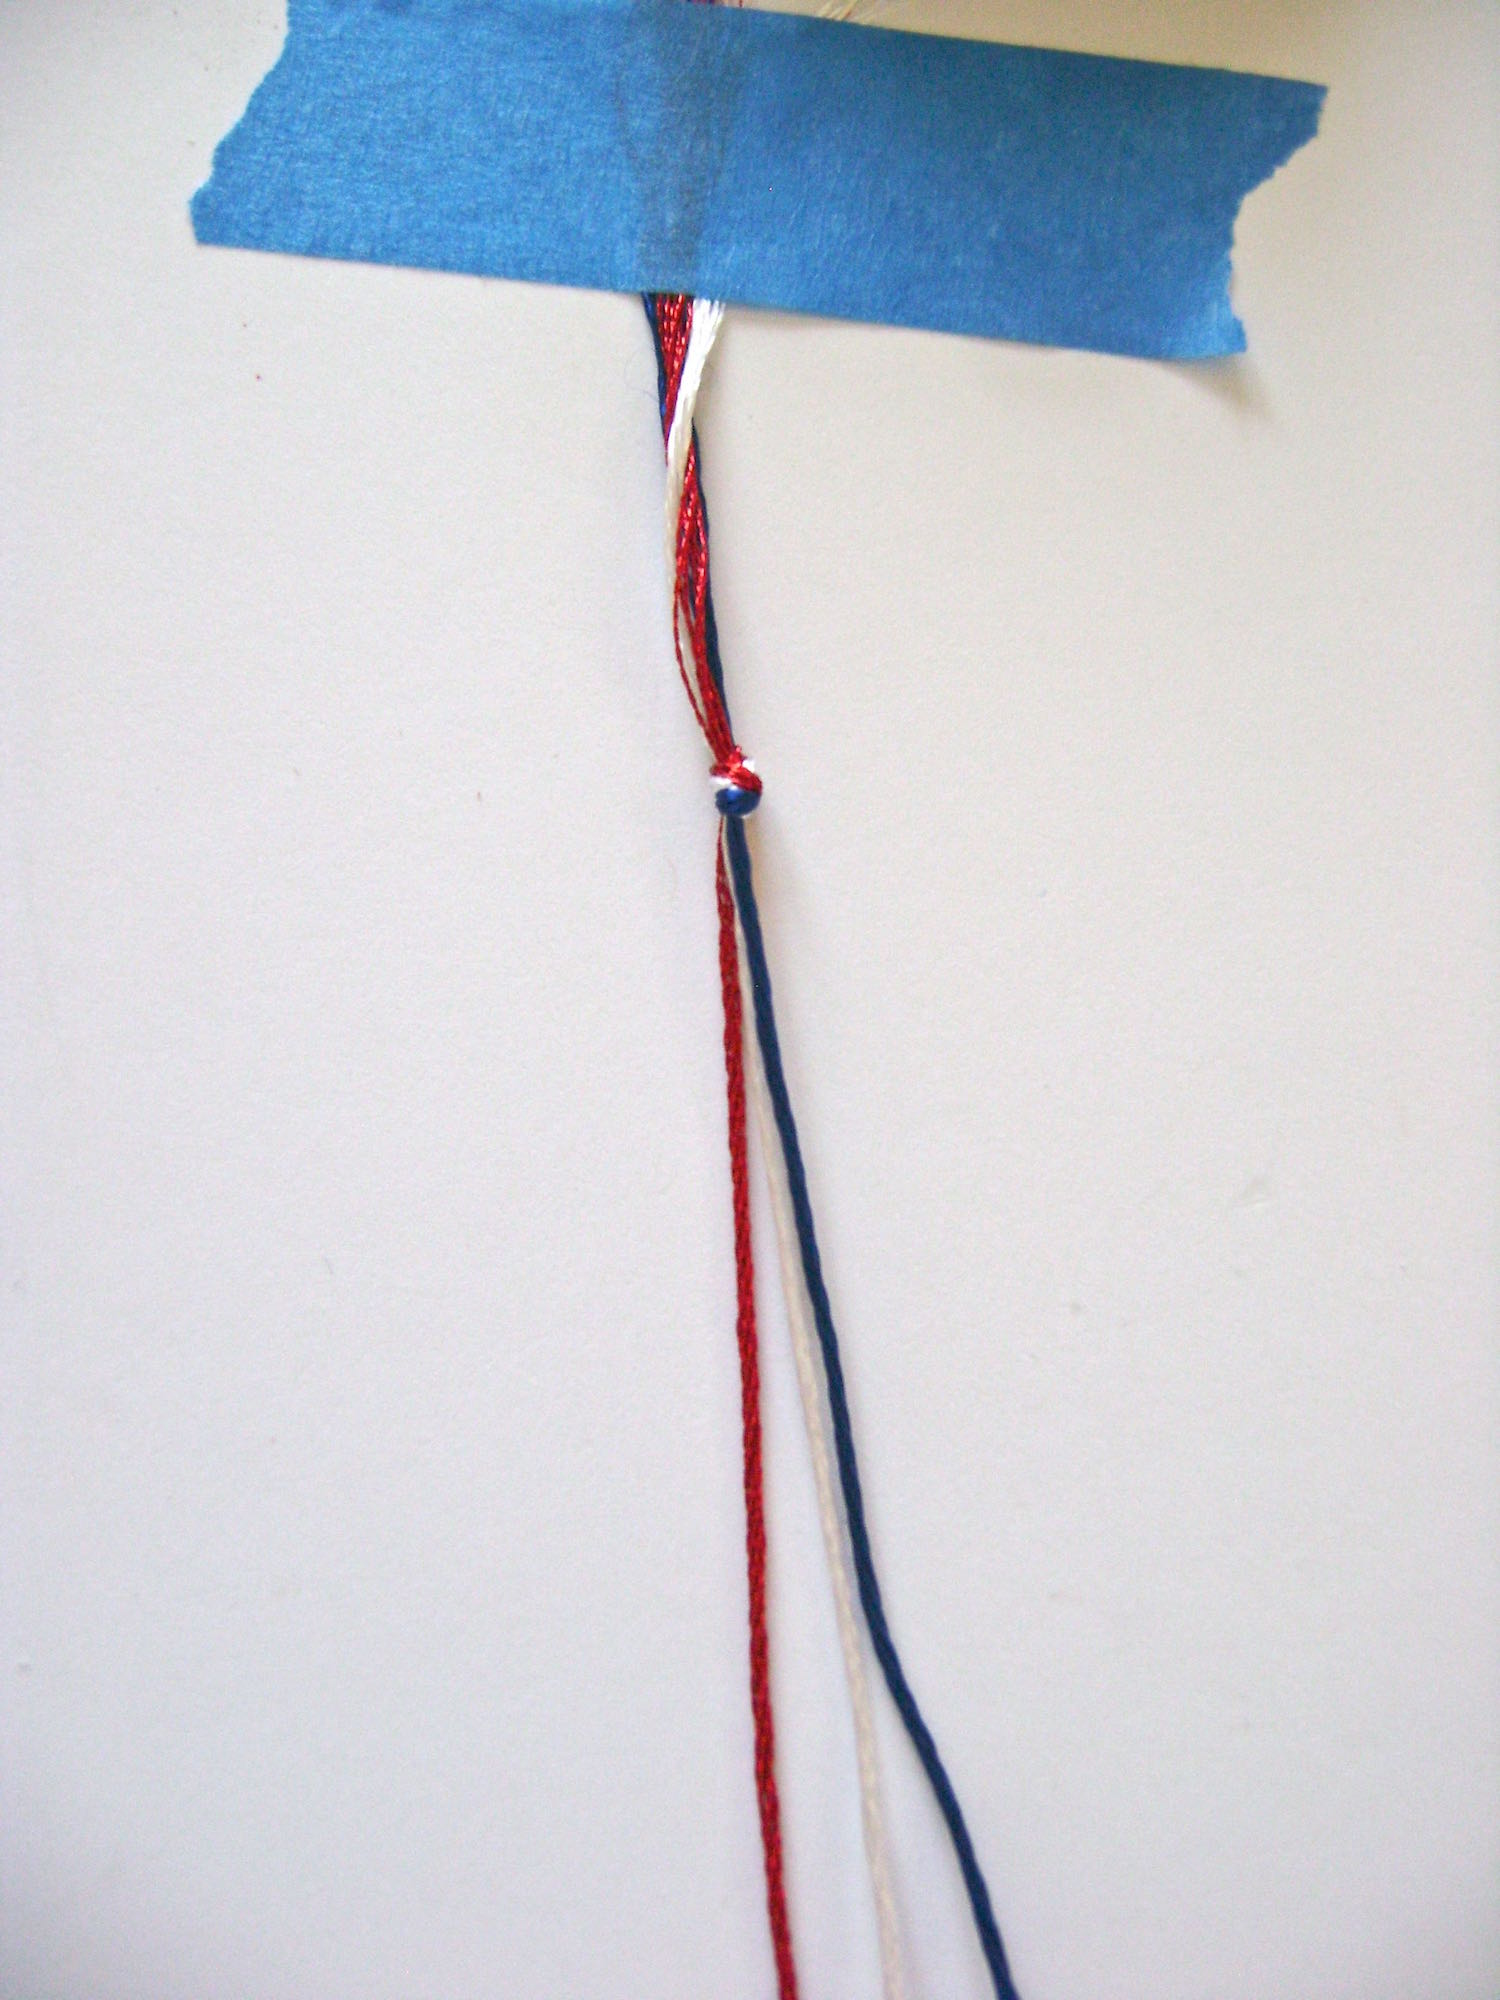 step 5 - Gather three strands of embroidery floss, red, white, and blue and knot them together. Tape the knotted end to the work surface.